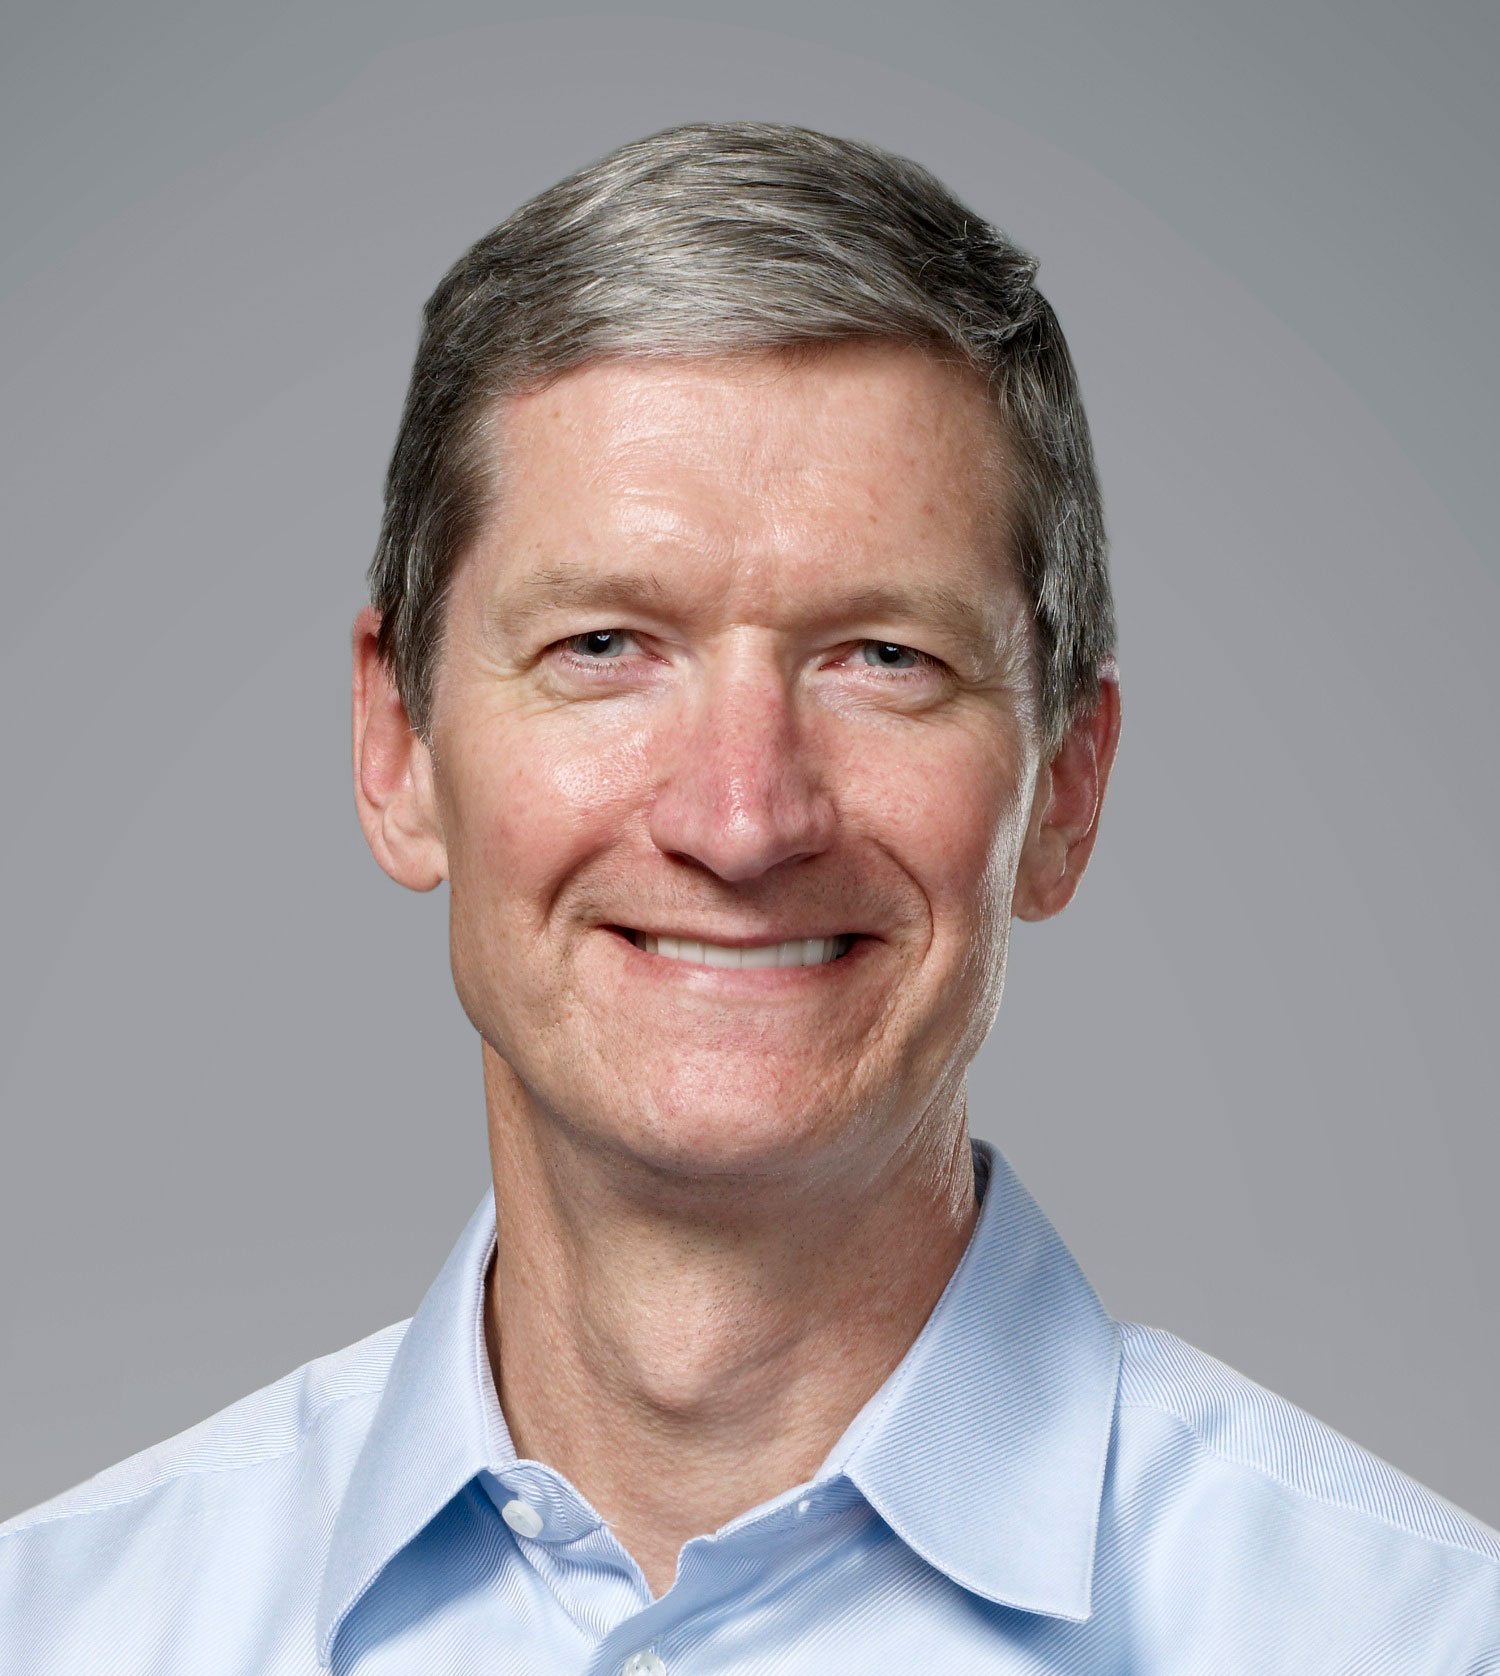 Apple CEO Tim Cook is on the short list for Time's 2014 Person of the Year